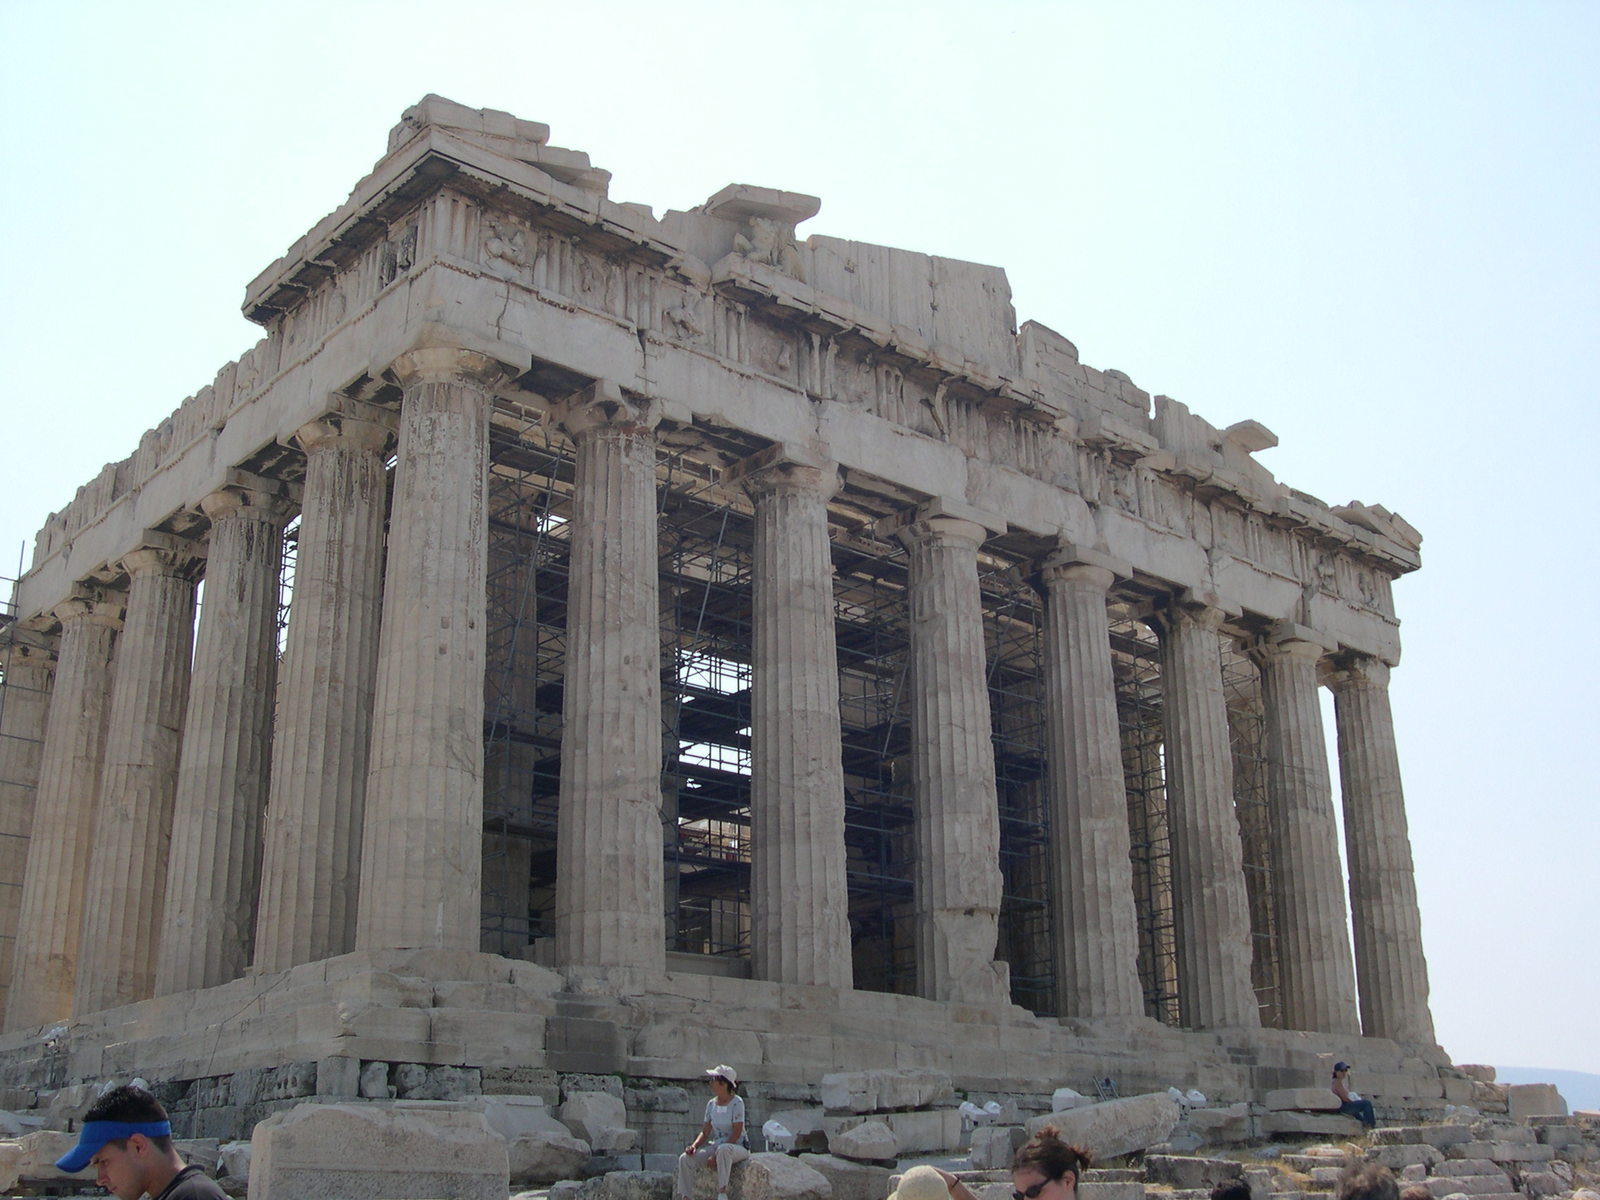 ancient architecture parthenon athens greece history structures greek bc acropolis ruins athena archive century temple arthistoryarchive arthistory